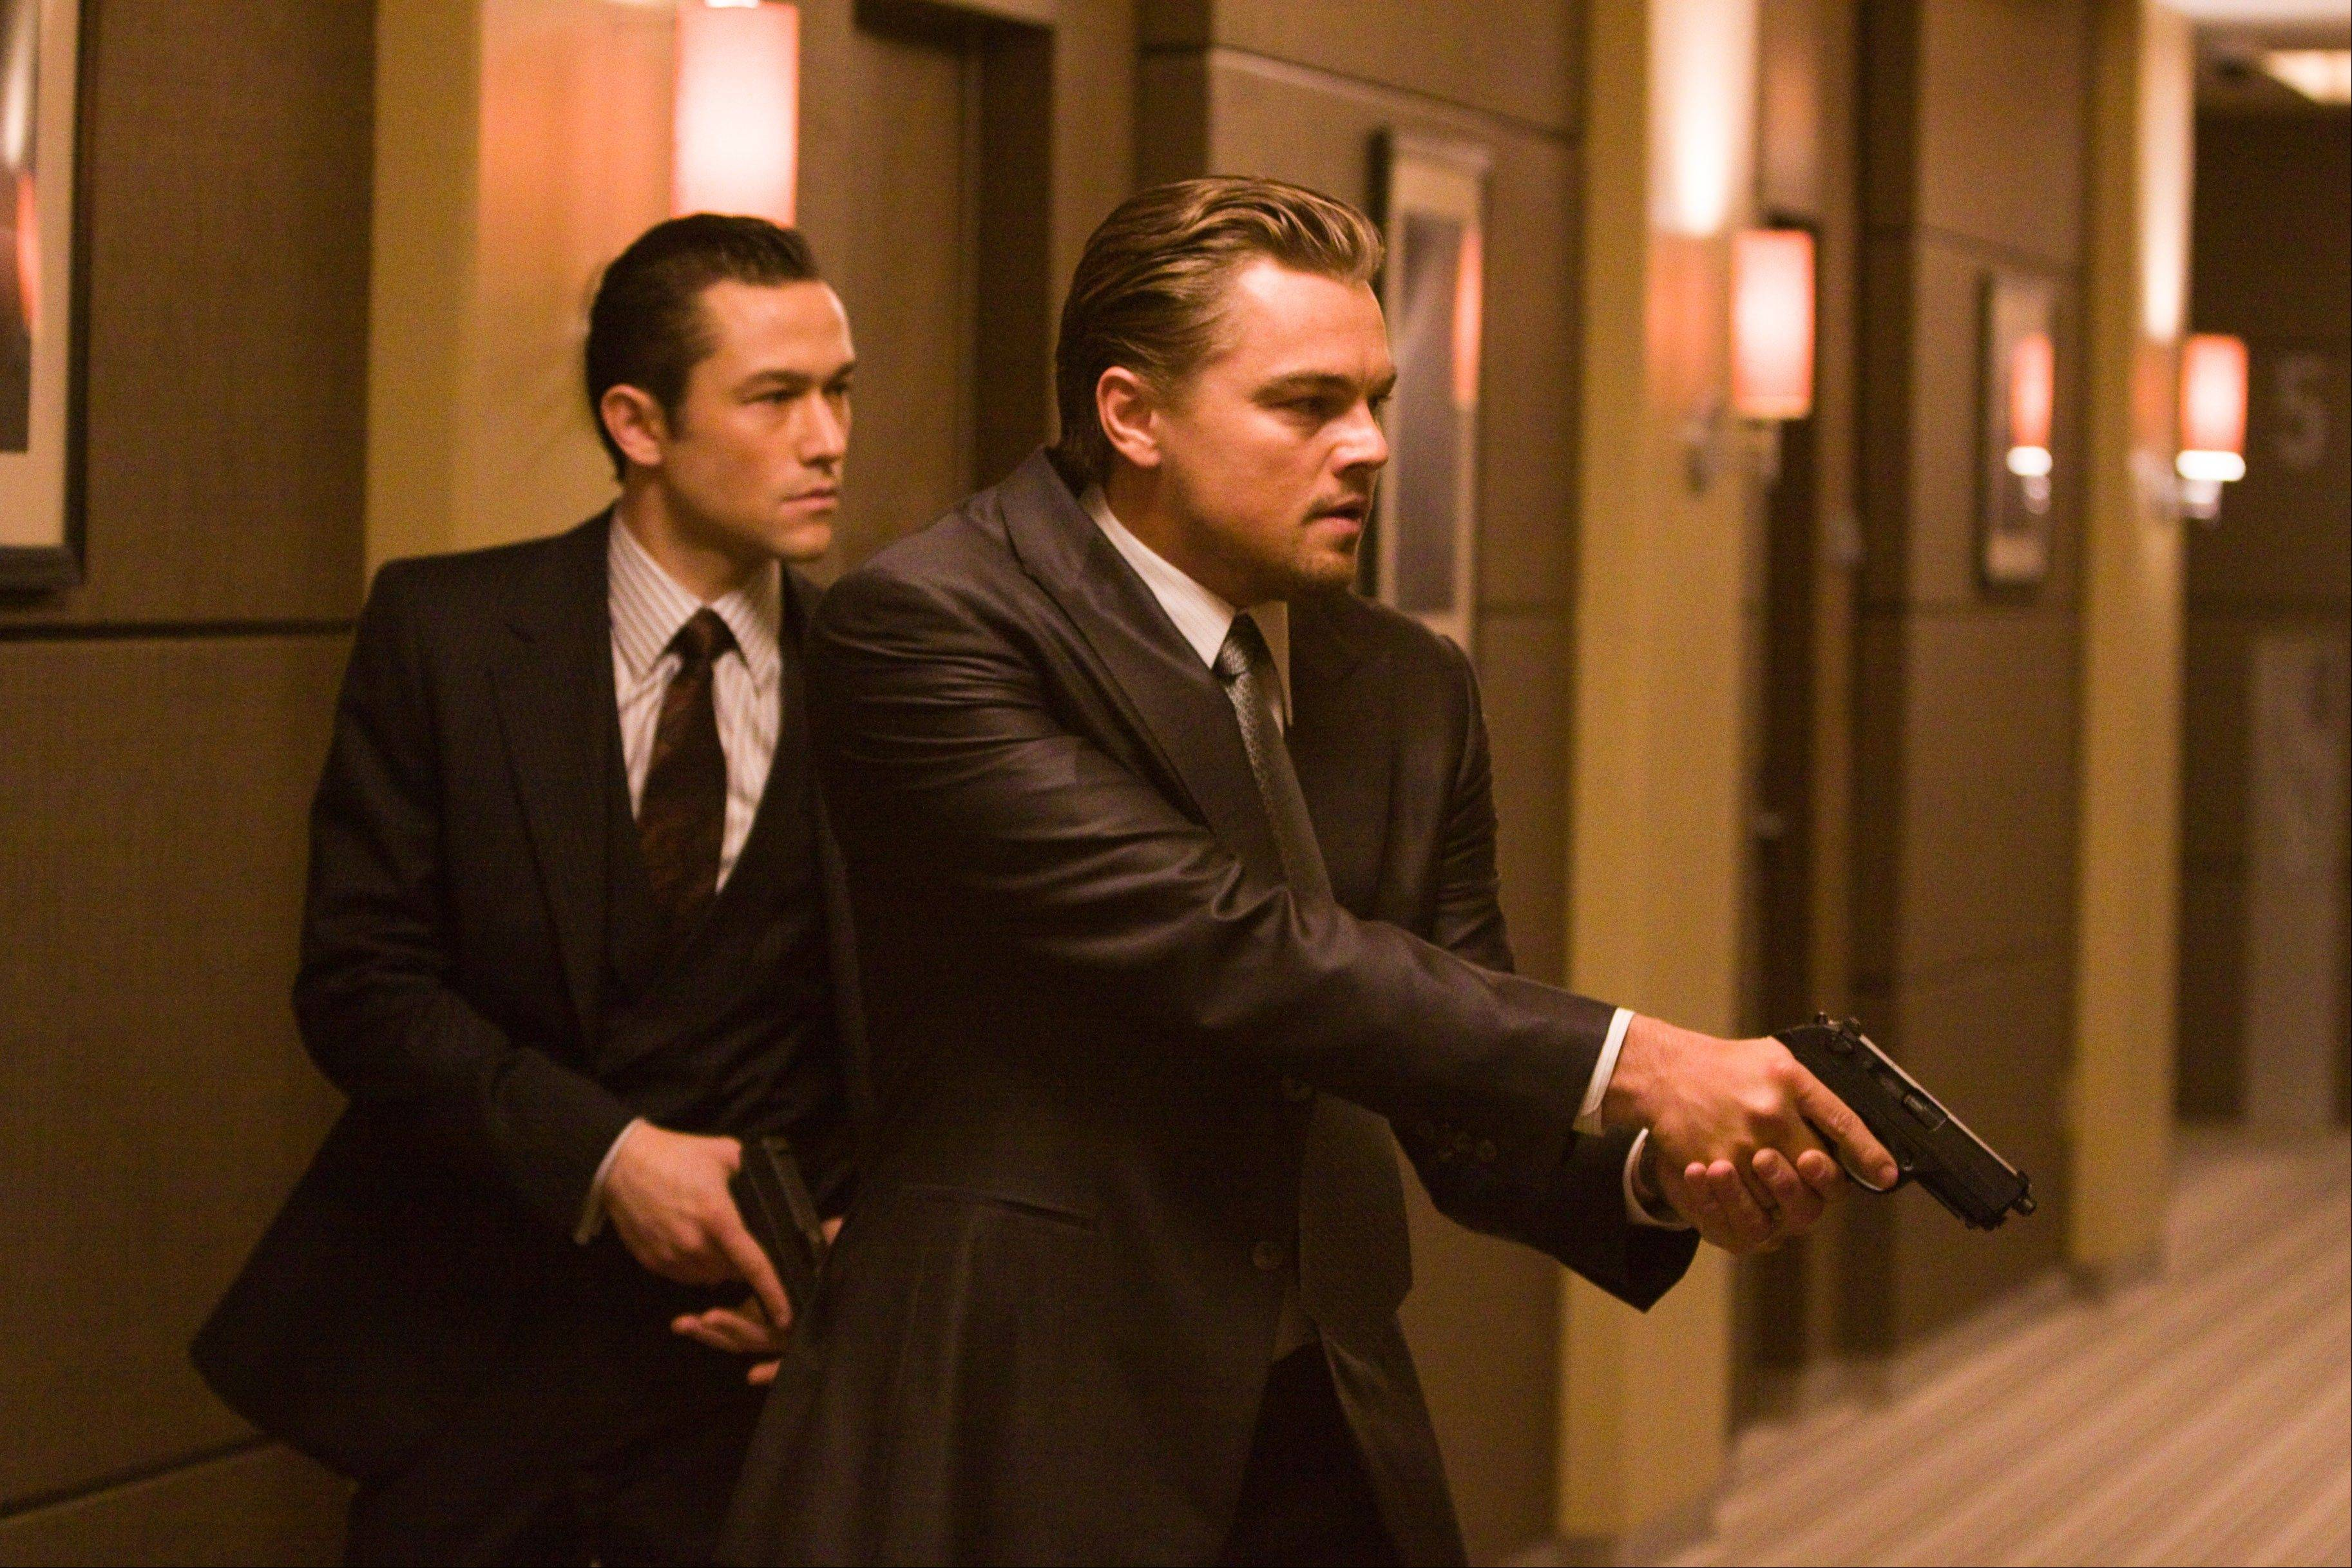 Joseph Gordon Levitt, left, and Leonardo DiCaprio star in �Inception,� which is rated PG-13. Ohio State University and the Annenberg Public Policy Center at the University of Pennsylvania surveyed gun violence in top-grossing movies, finding that it had more than tripled in PG-13 films since 1985.